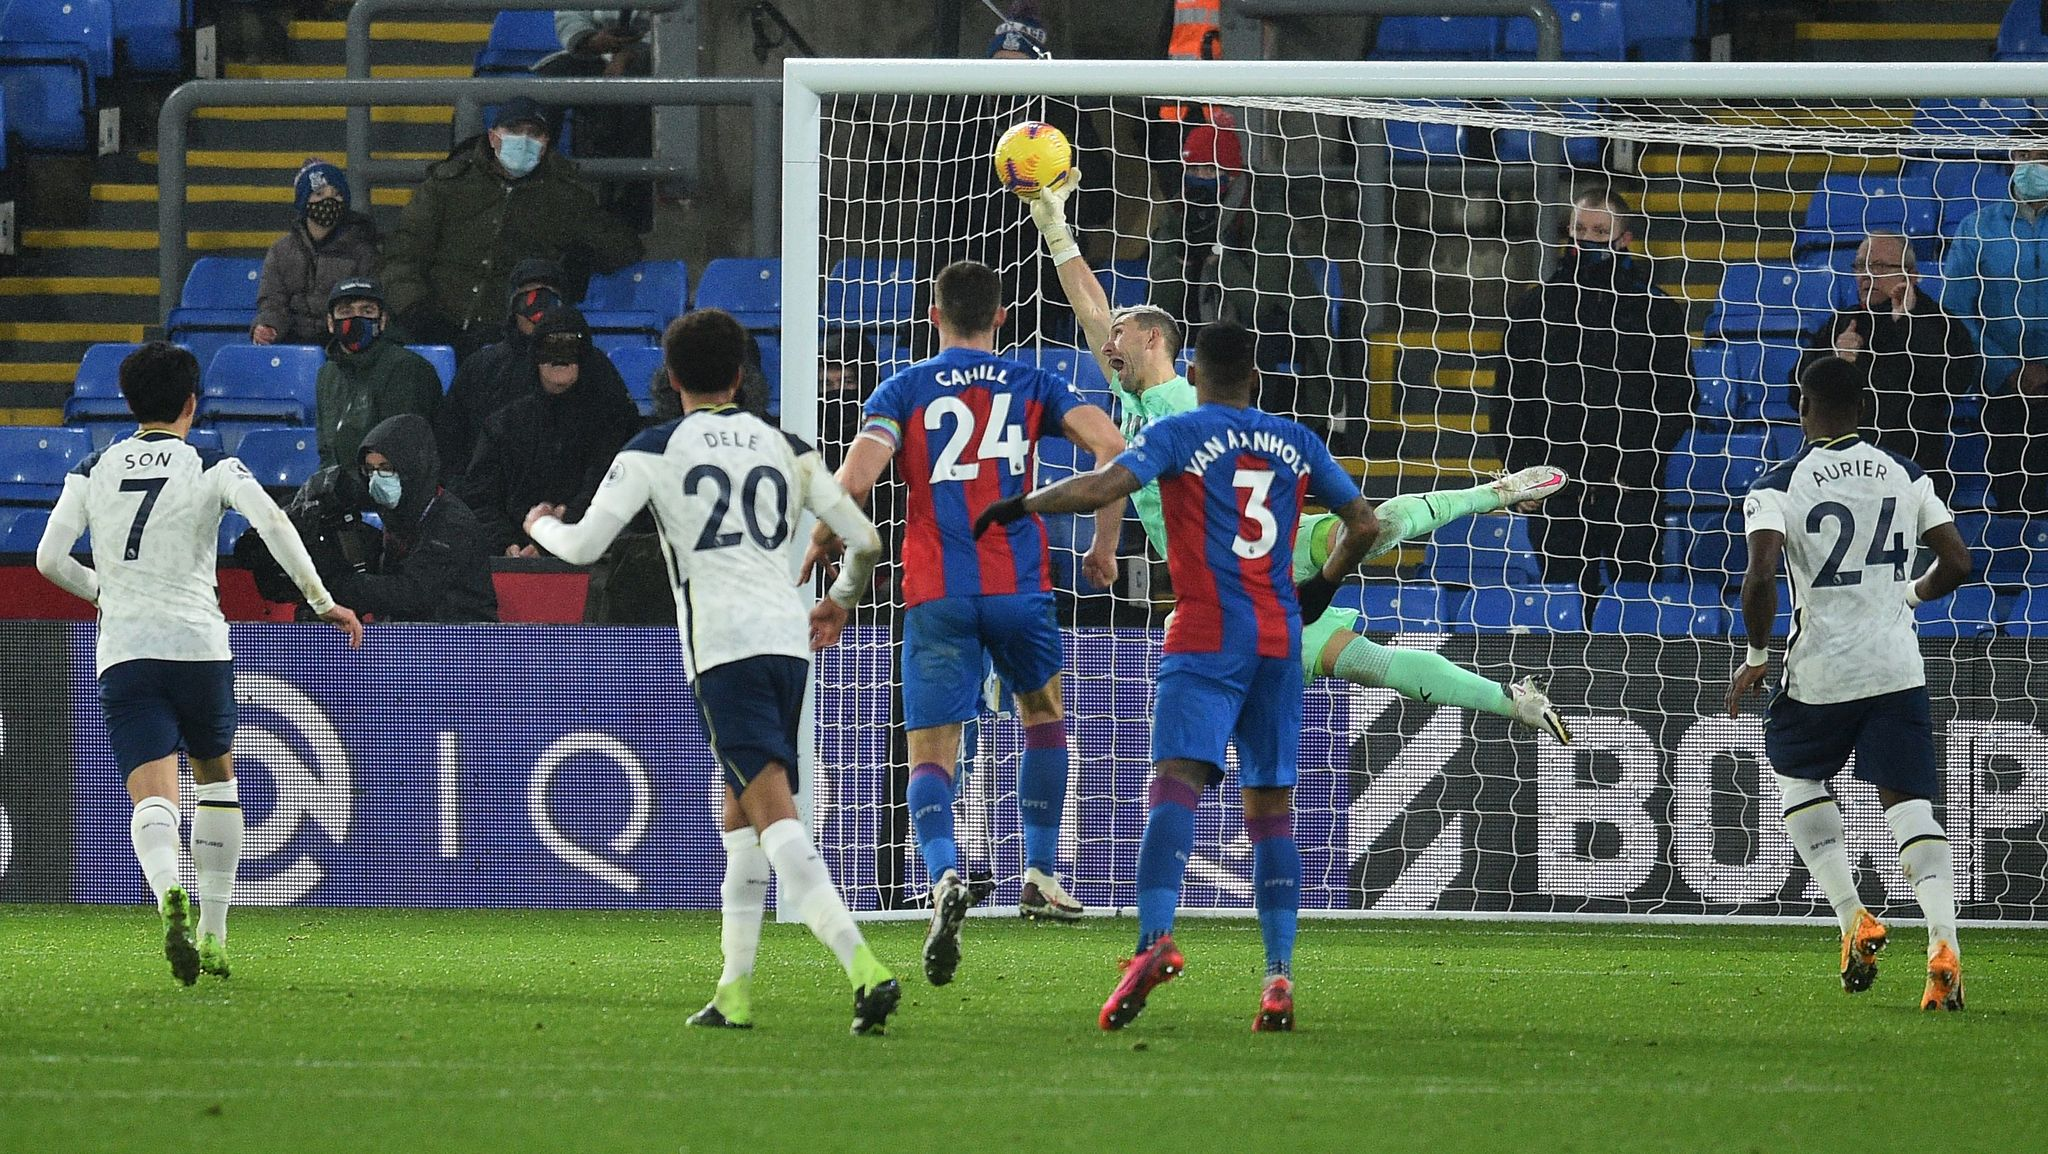 Crystal Palaces Spanish goalkeeper Vicente Guaita (back) tips the ball over the bar to make a save from a free kick by lt;HIT gt;Tottenham lt;/HIT gt; Hotspurs English defender Eric Dier during the English Premier League football match between Crystal Palace and lt;HIT gt;Tottenham lt;/HIT gt; Hotspur at Selhurst Park in south London on December 13, 2020. - The game ended 1-1. (Photo by Glyn KIRK / POOL / AFP) / RESTRICTED TO EDITORIAL USE. No use with unauthorized audio, video, data, fixture lists, club/league logos or live services. Online in-match use limited to 120 images. An additional 40 images may be used in extra time. No video emulation. Social media in-match use limited to 120 images. An additional 40 images may be used in extra time. No use in betting publications, games or single club/league/player publications. /